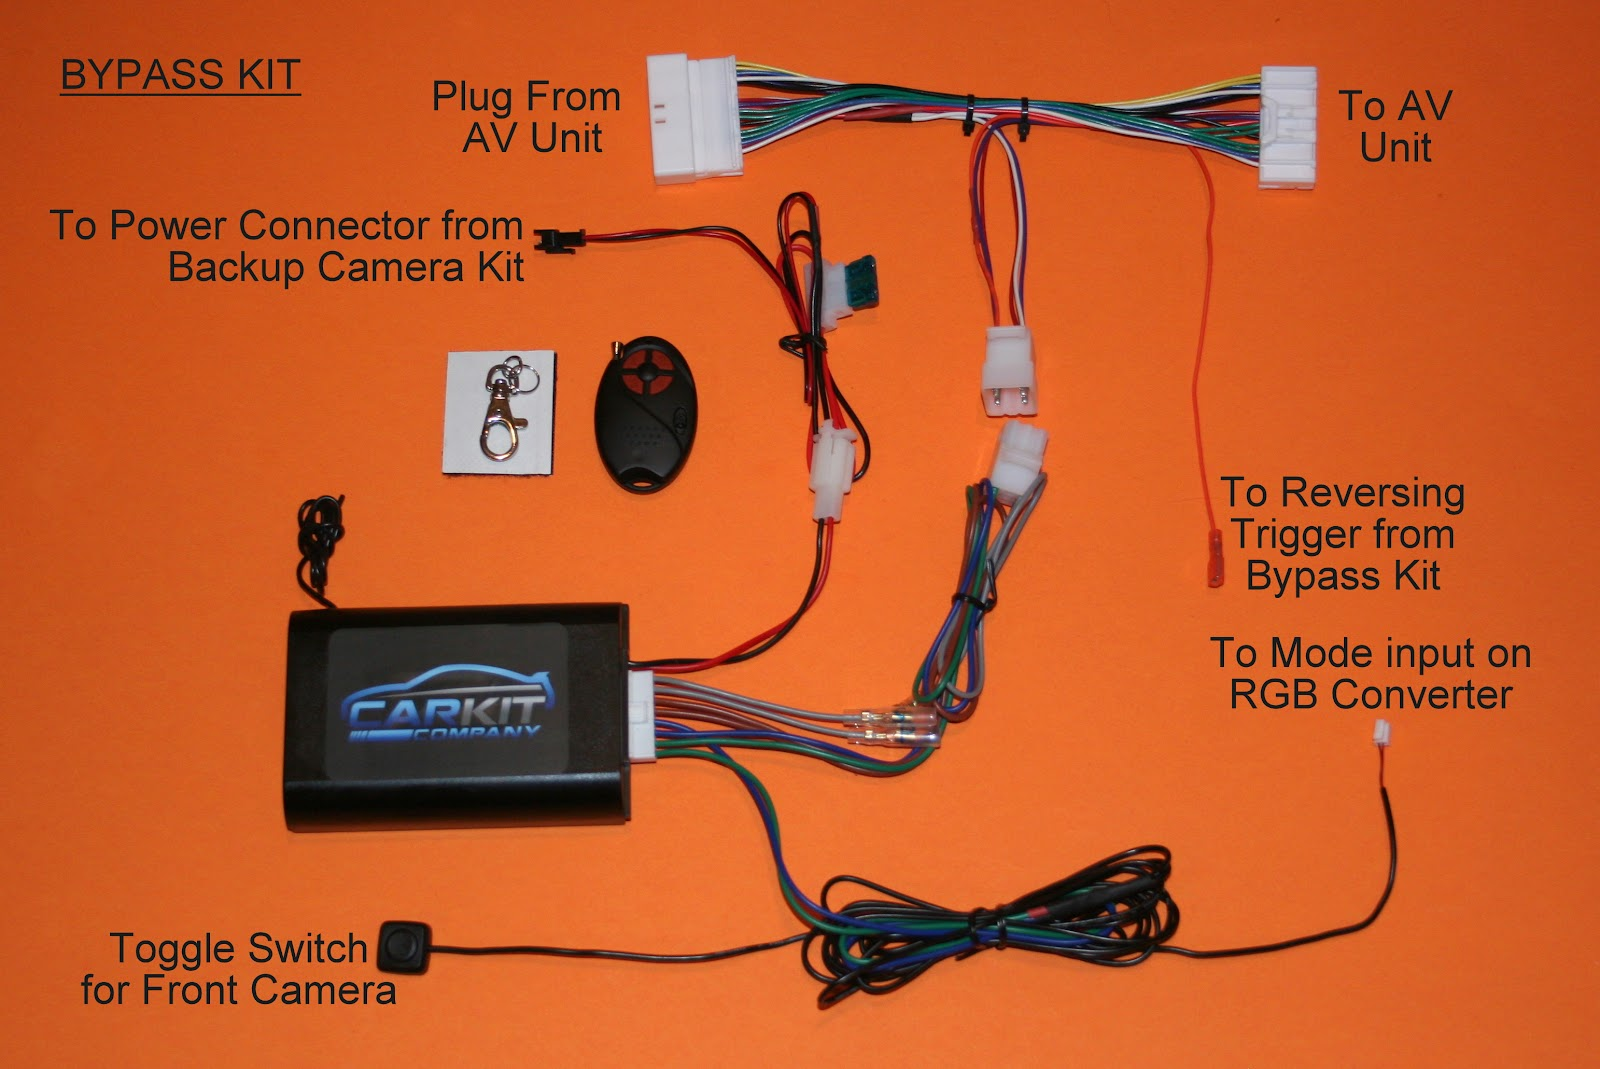 Rear camera remote bypass kit us200910 car kit company for us2009 10 cars please take a look at the newer v3 bypass kit for us2009 10 asfbconference2016 Gallery